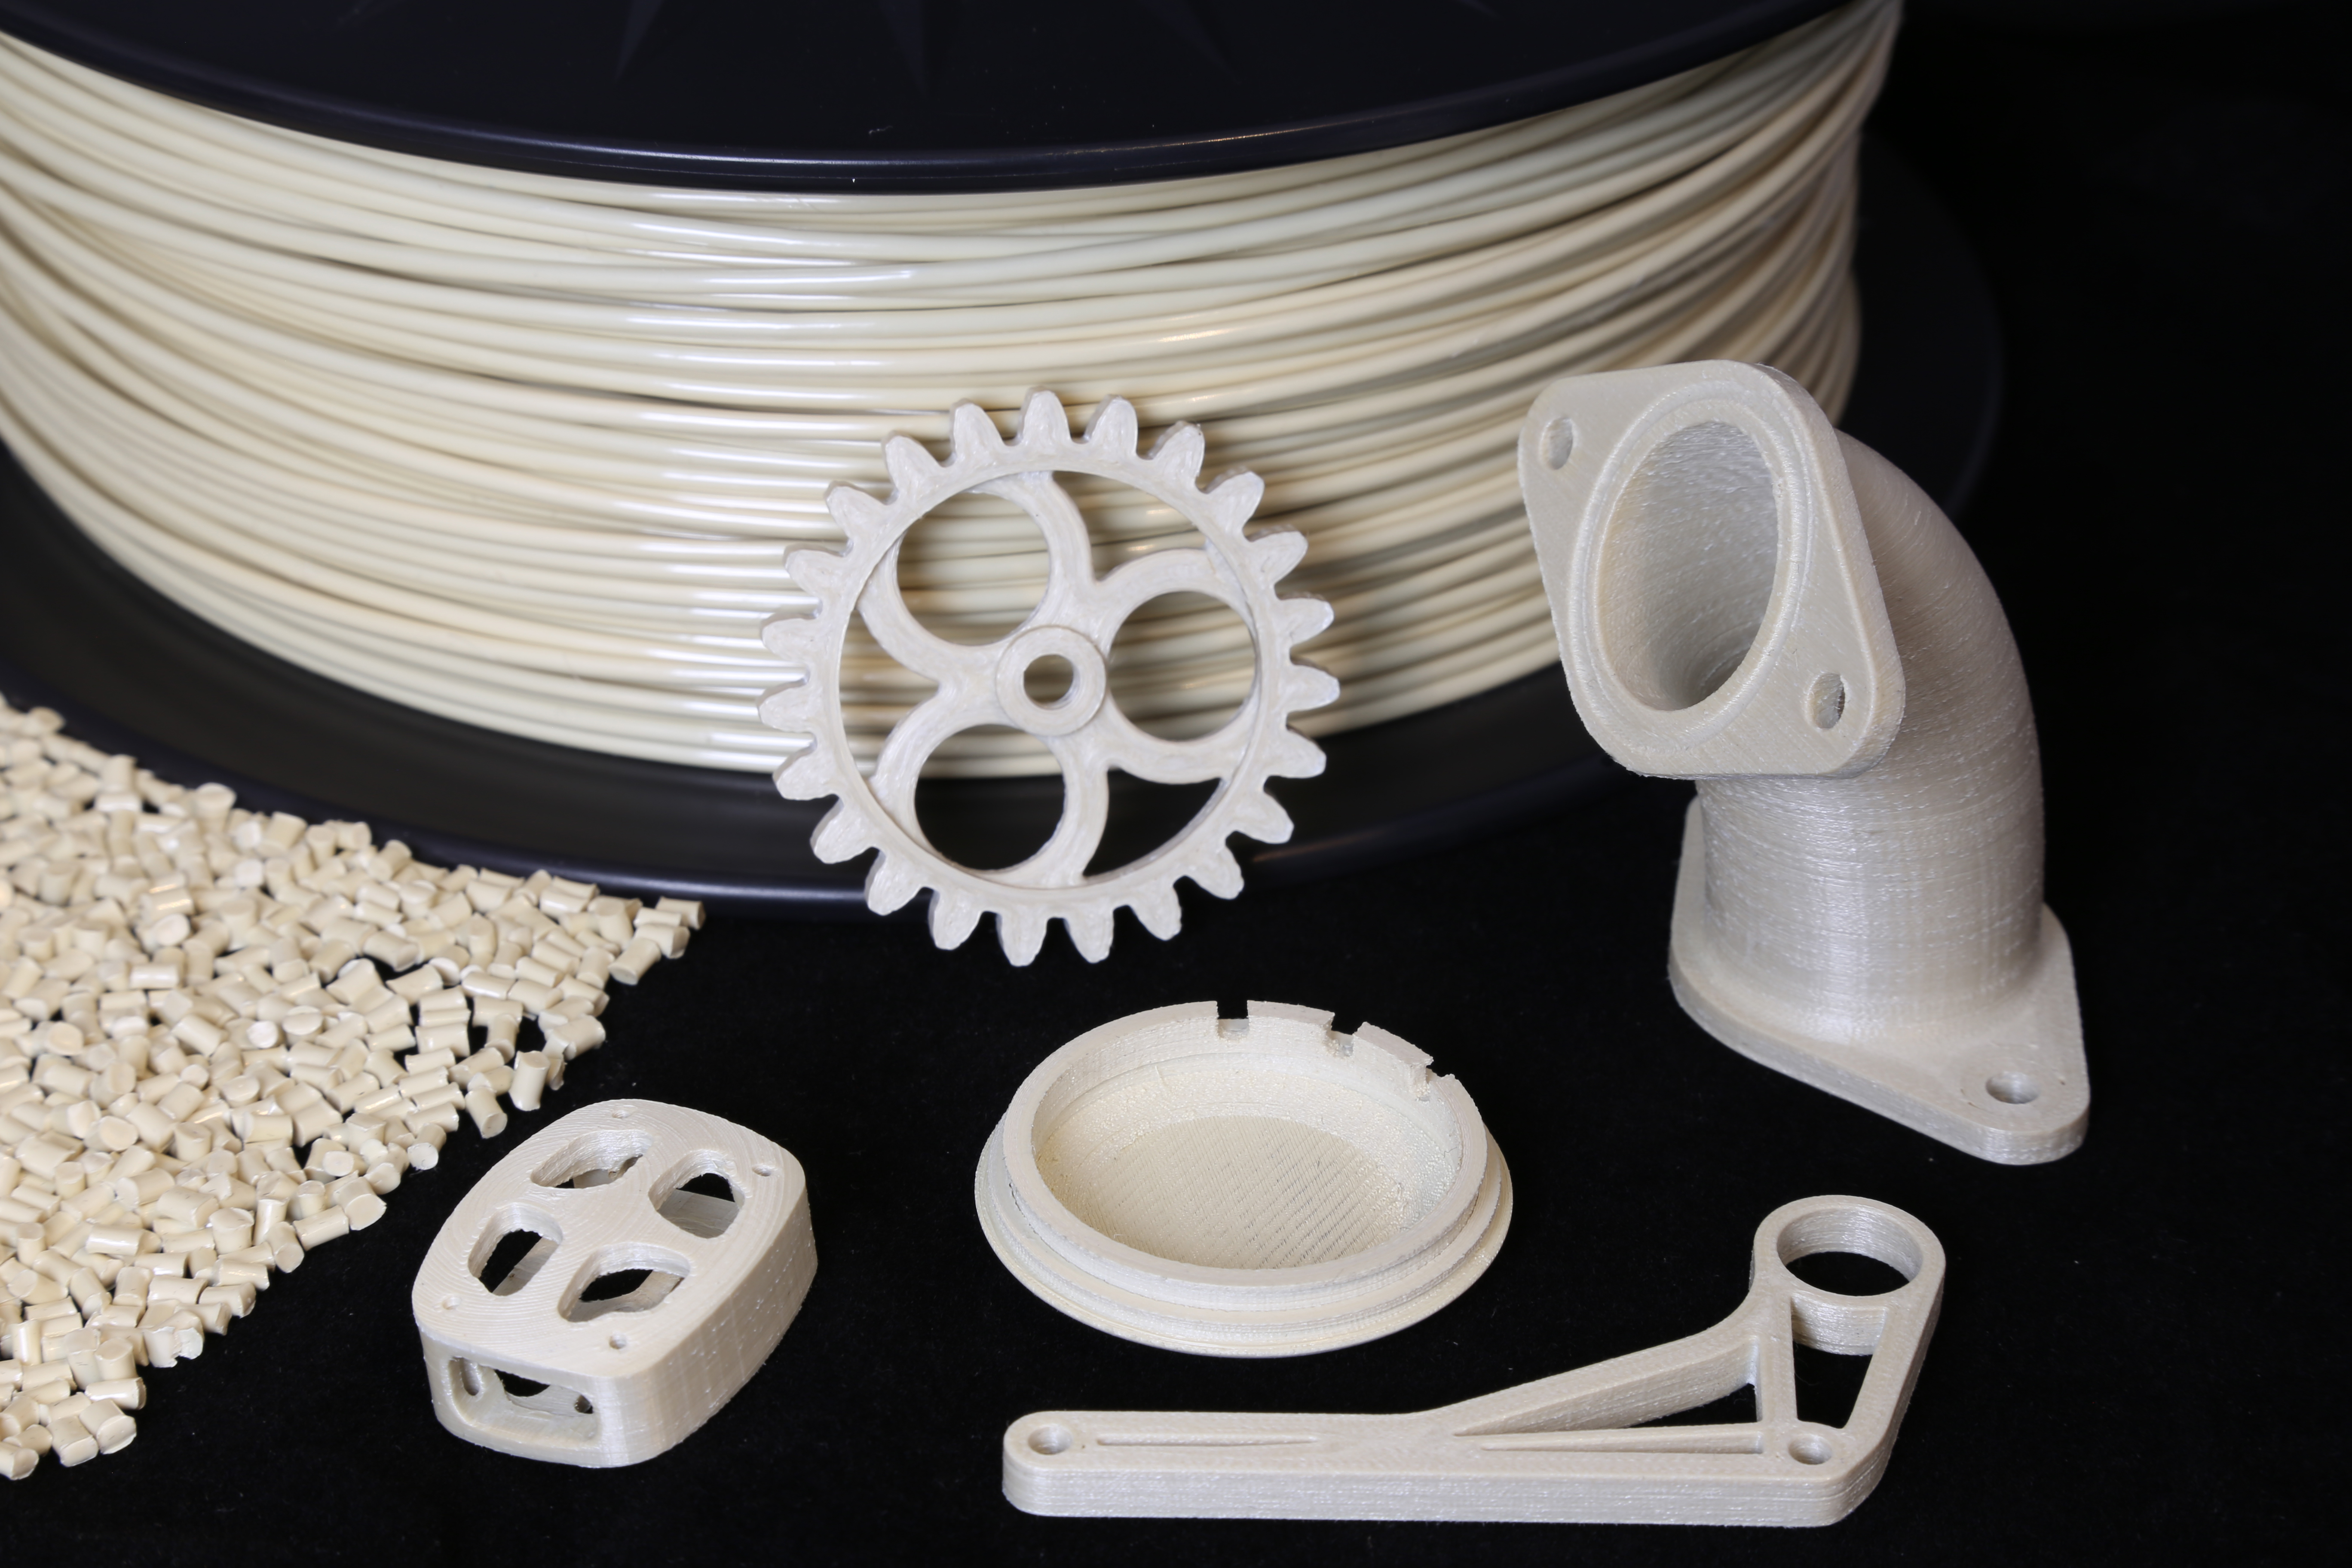 NematX offers application-specific LCP materials and manufacturing processes for 3D printed high-performance parts. Photo via NematX.